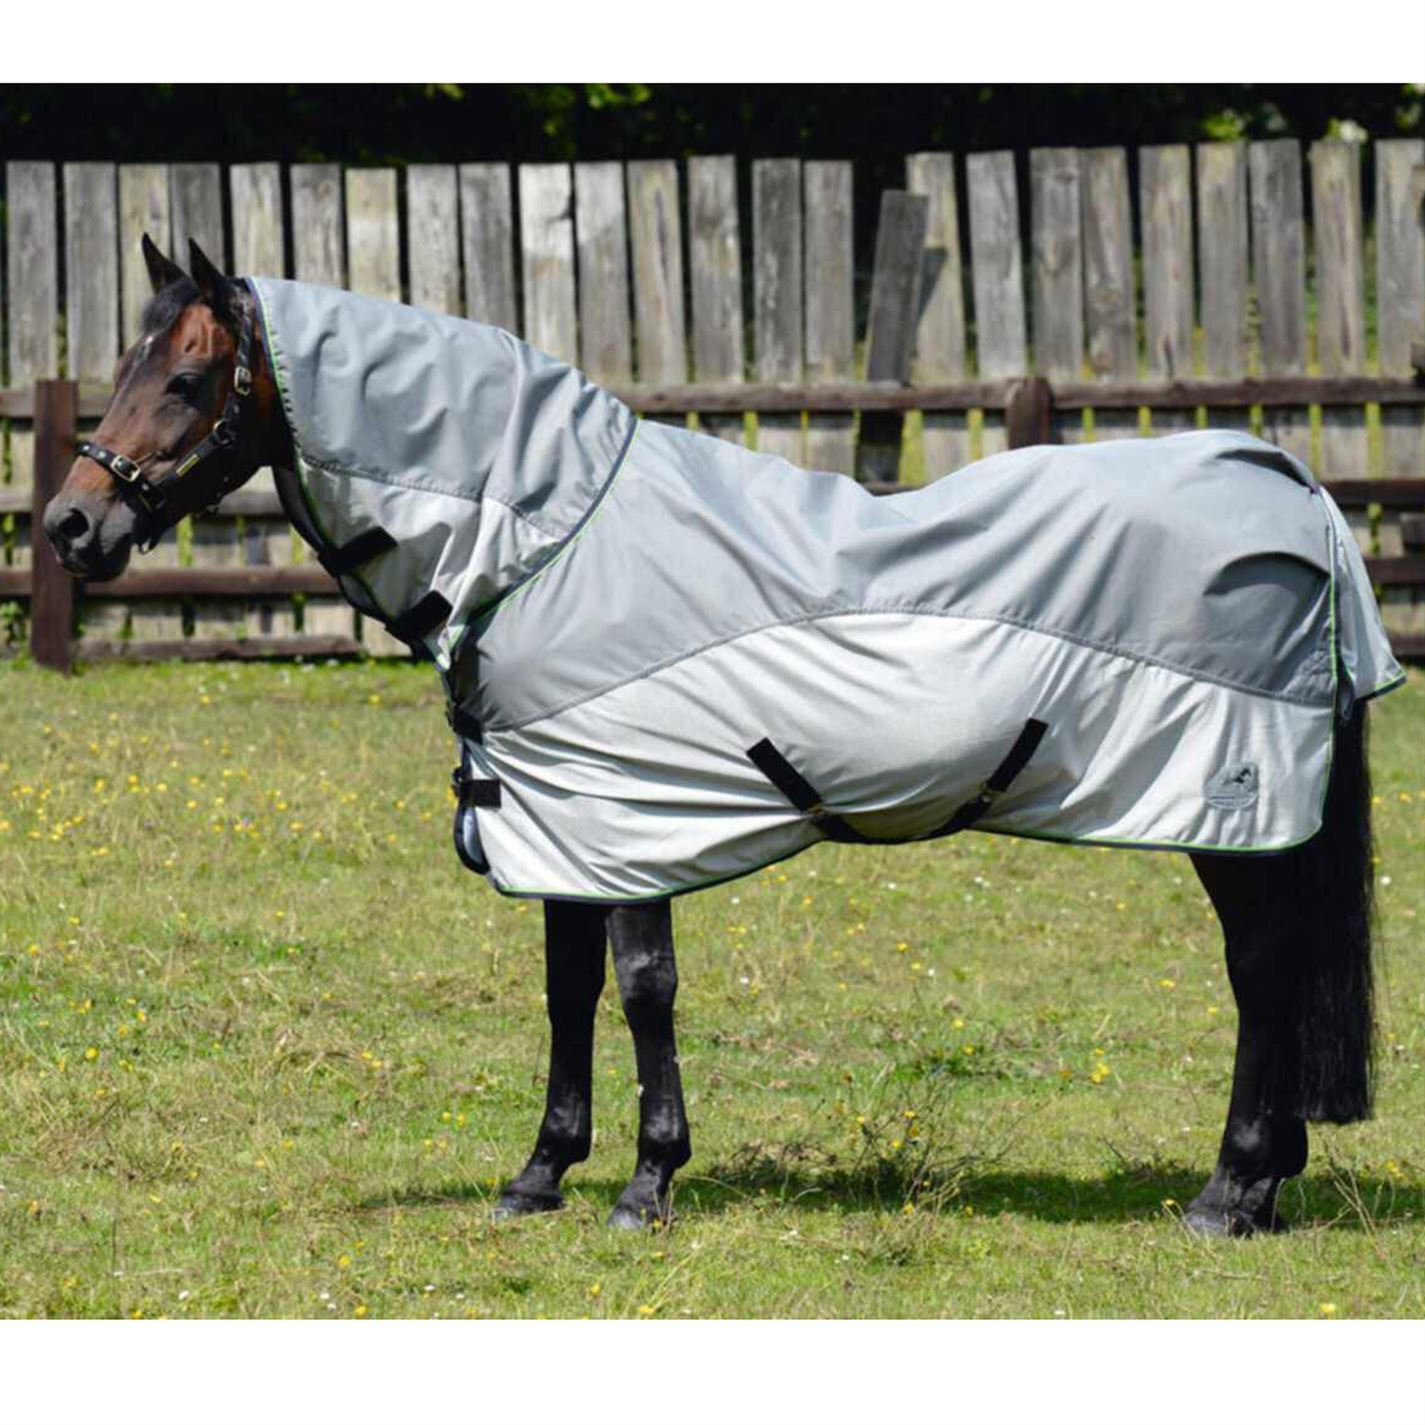 Masta Avante Combo Fly Pony Rug Waterproof Waterproof Waterproof Breathable Mesh Horses 585632